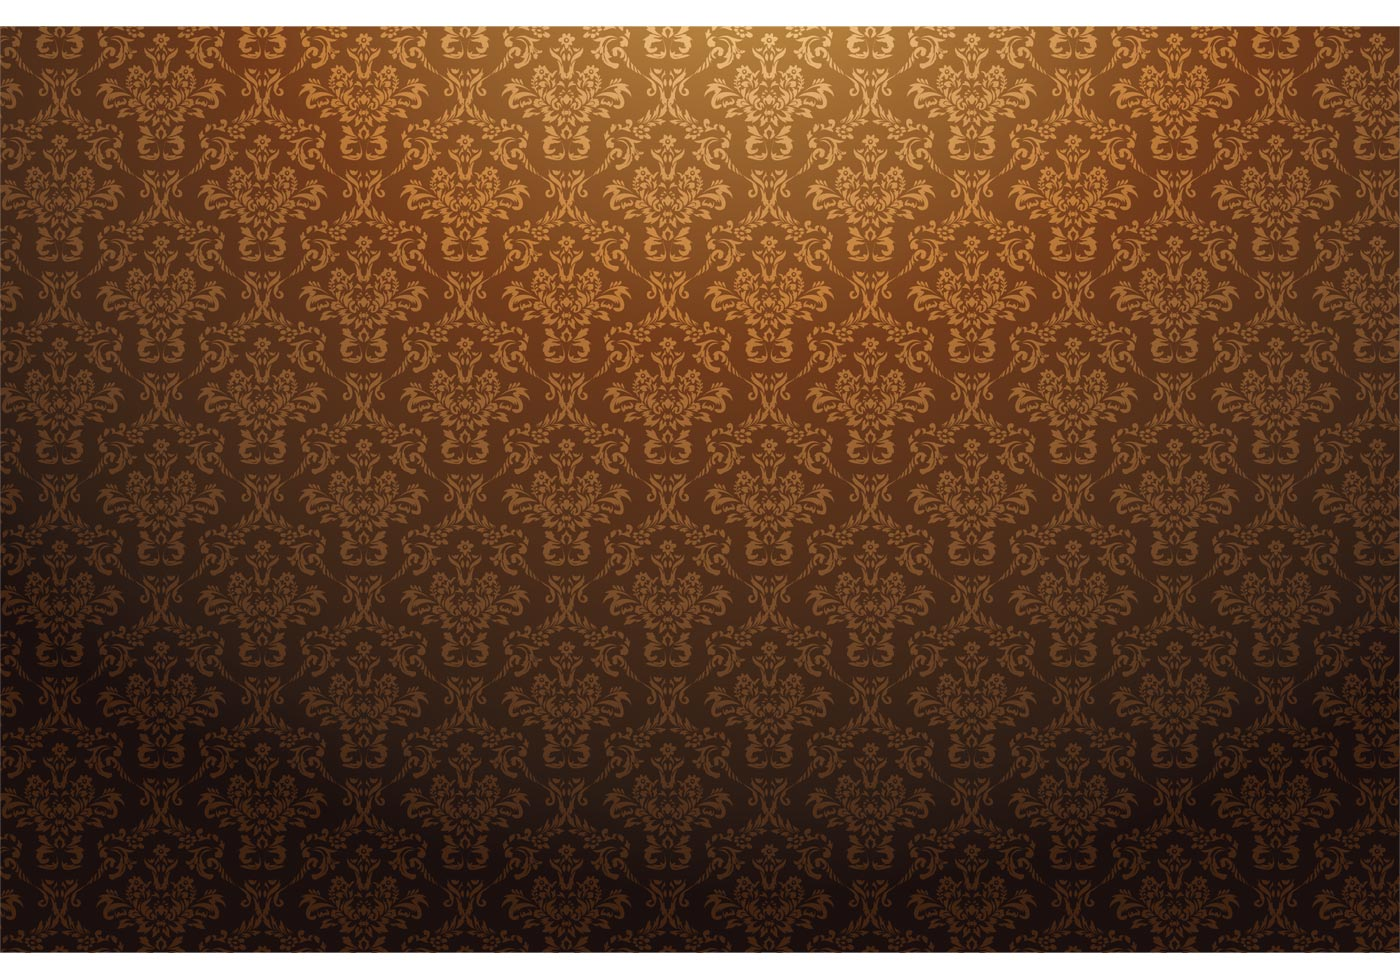 Victorian Wallpaper Black Free Damask Vector Pattern Download Free Vector Art